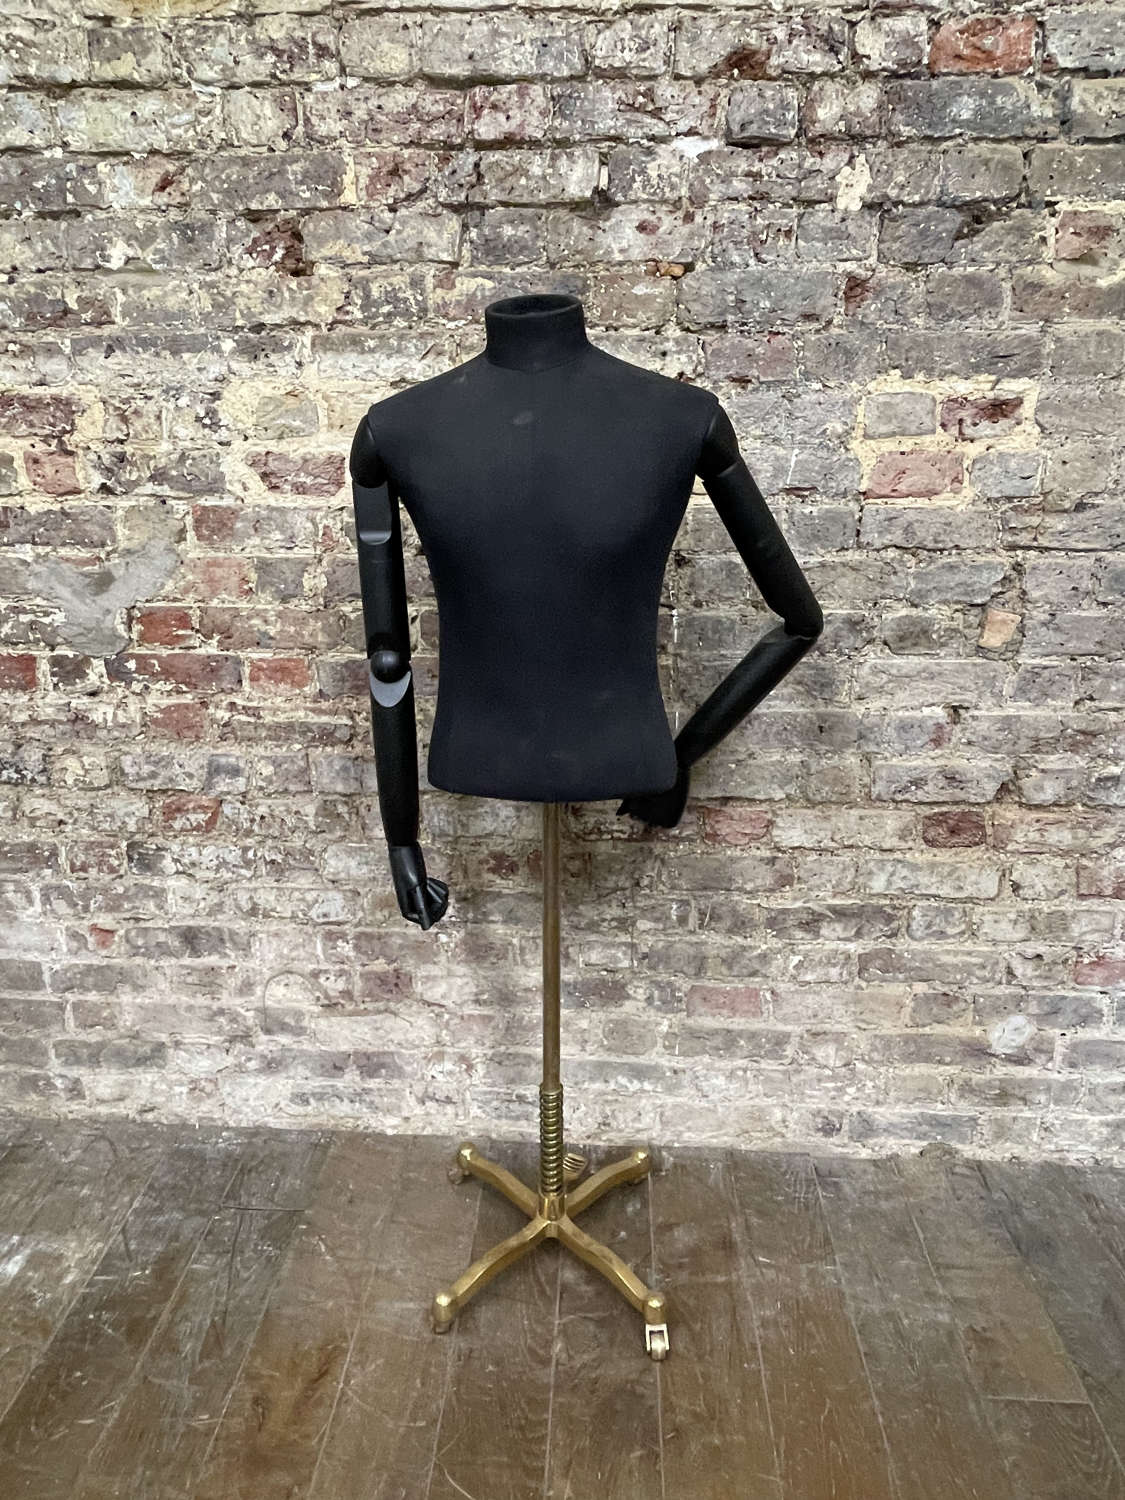 1980s Male Mannequin